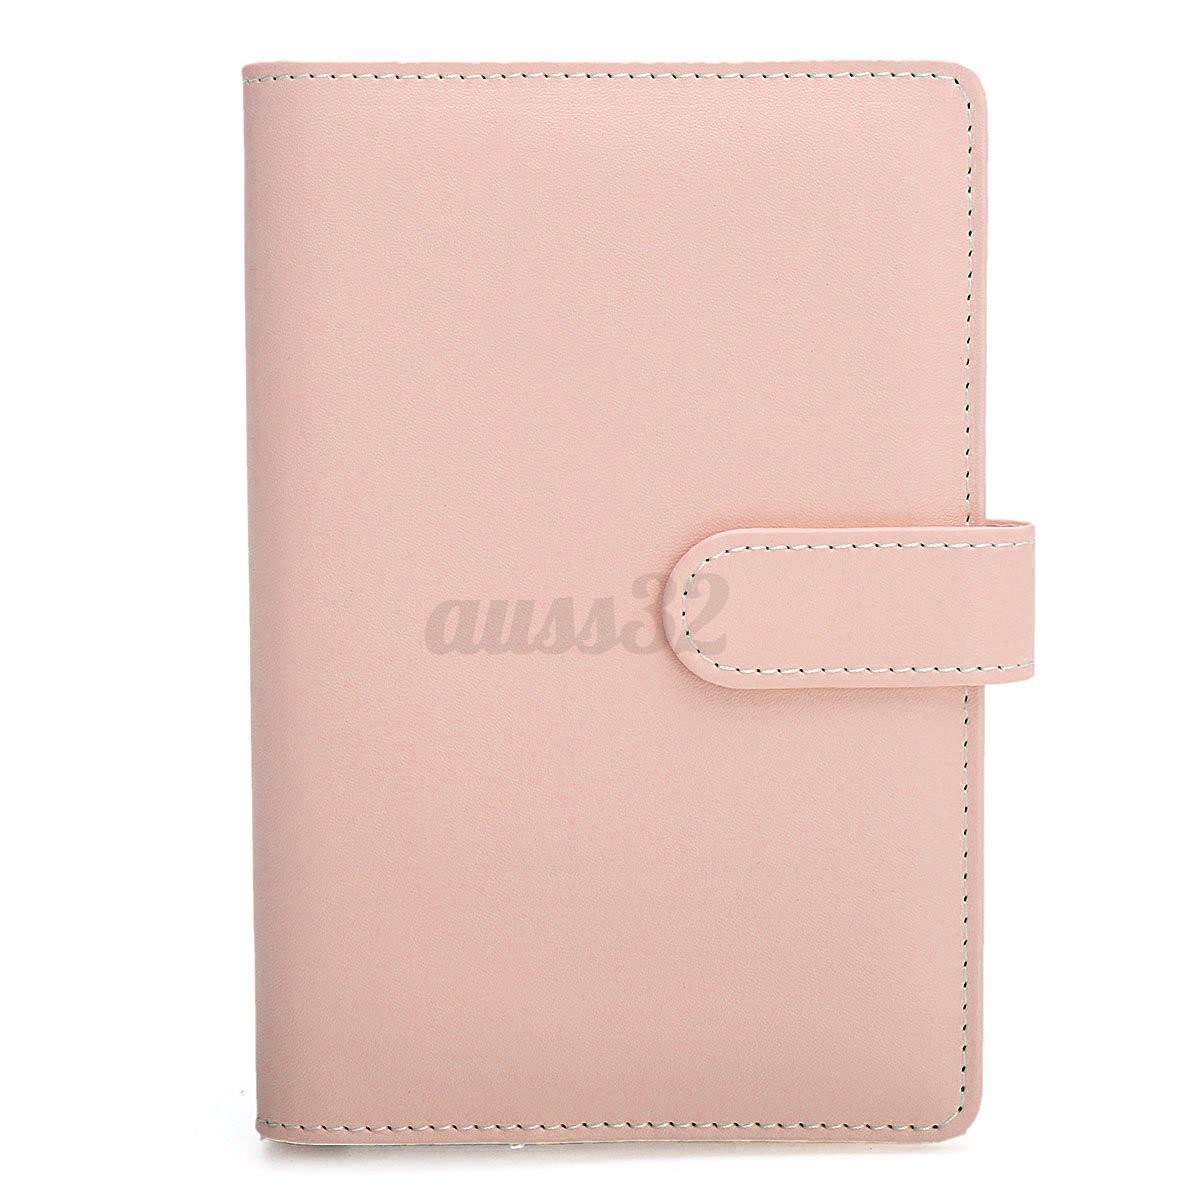 3 Color A5 A6 Loose Leaf Ring Binder Notebook Shell Weekly